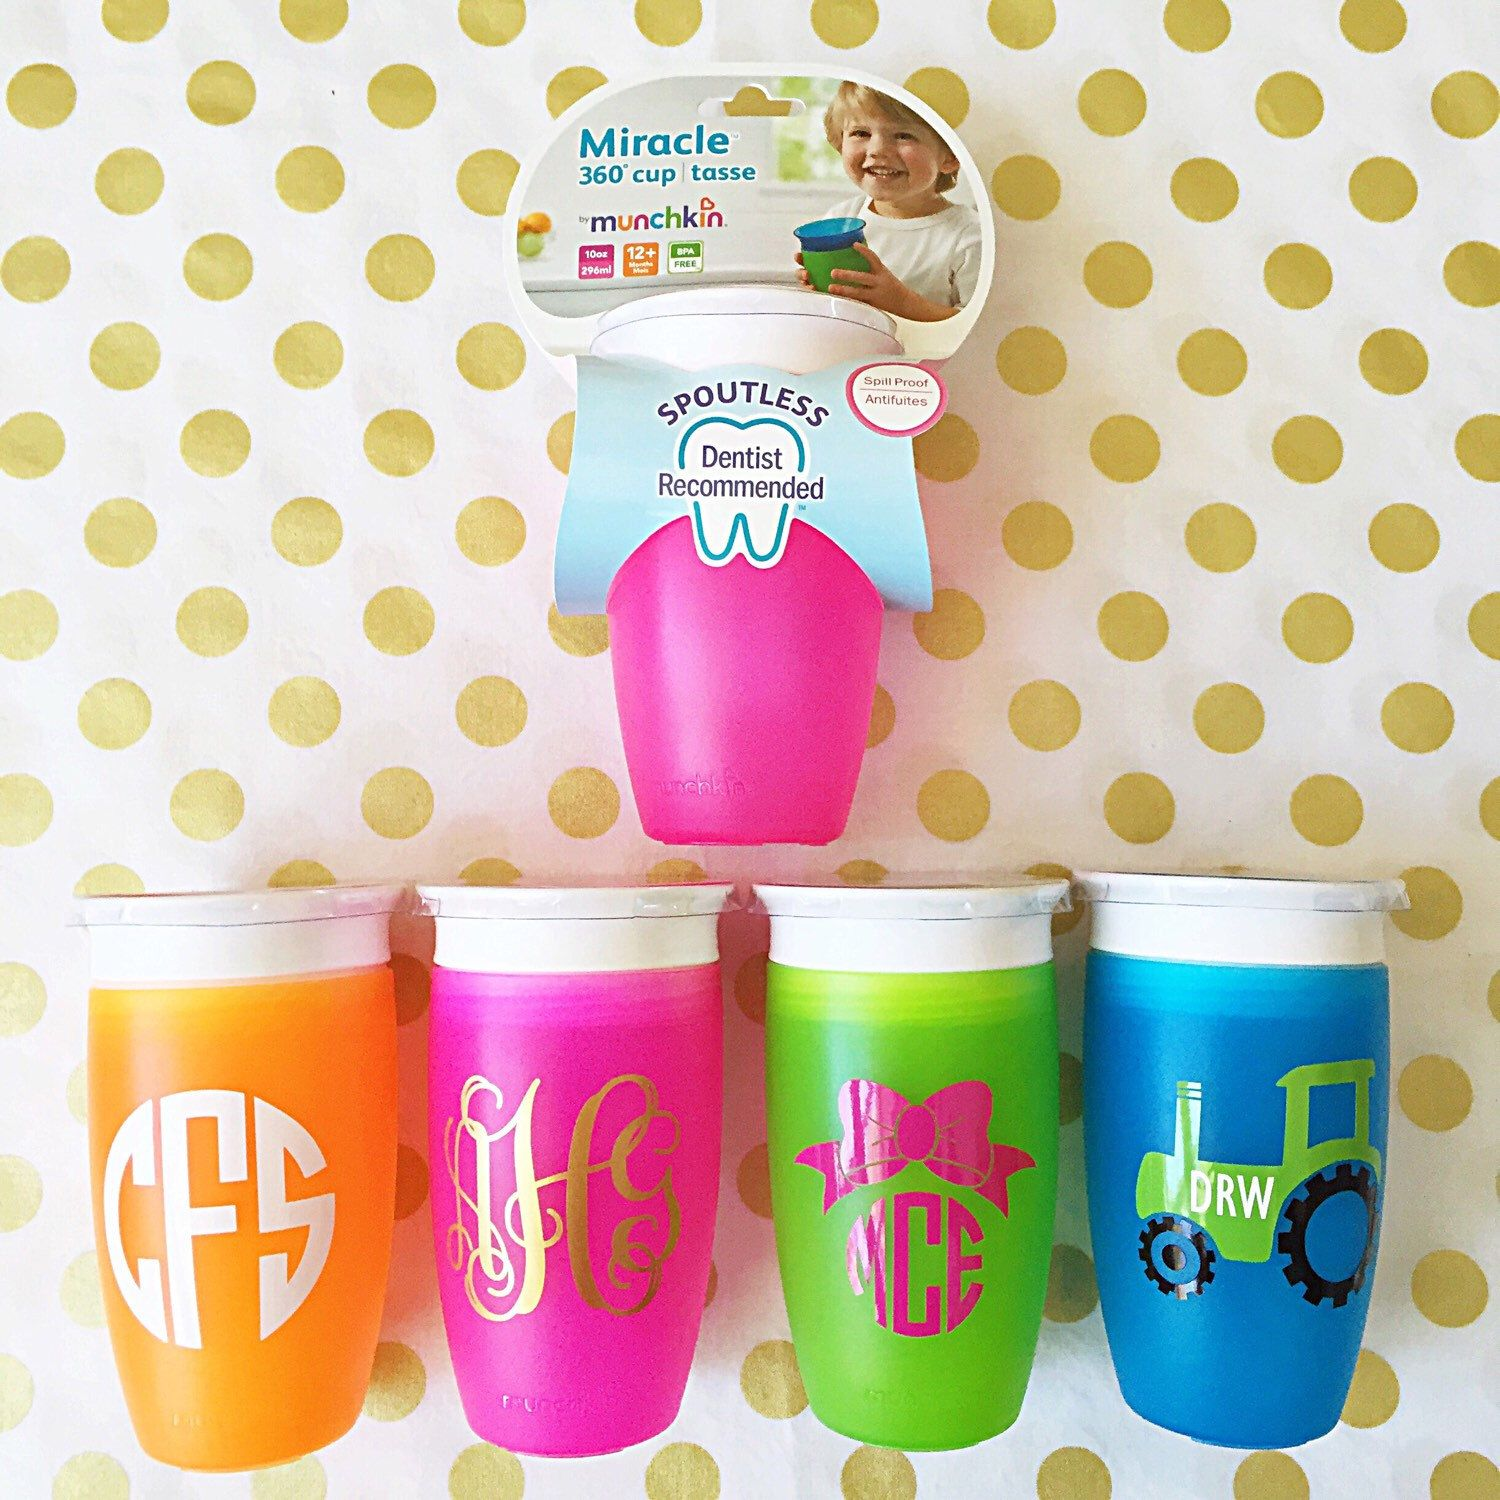 Decal Sizefor Sippy Cups